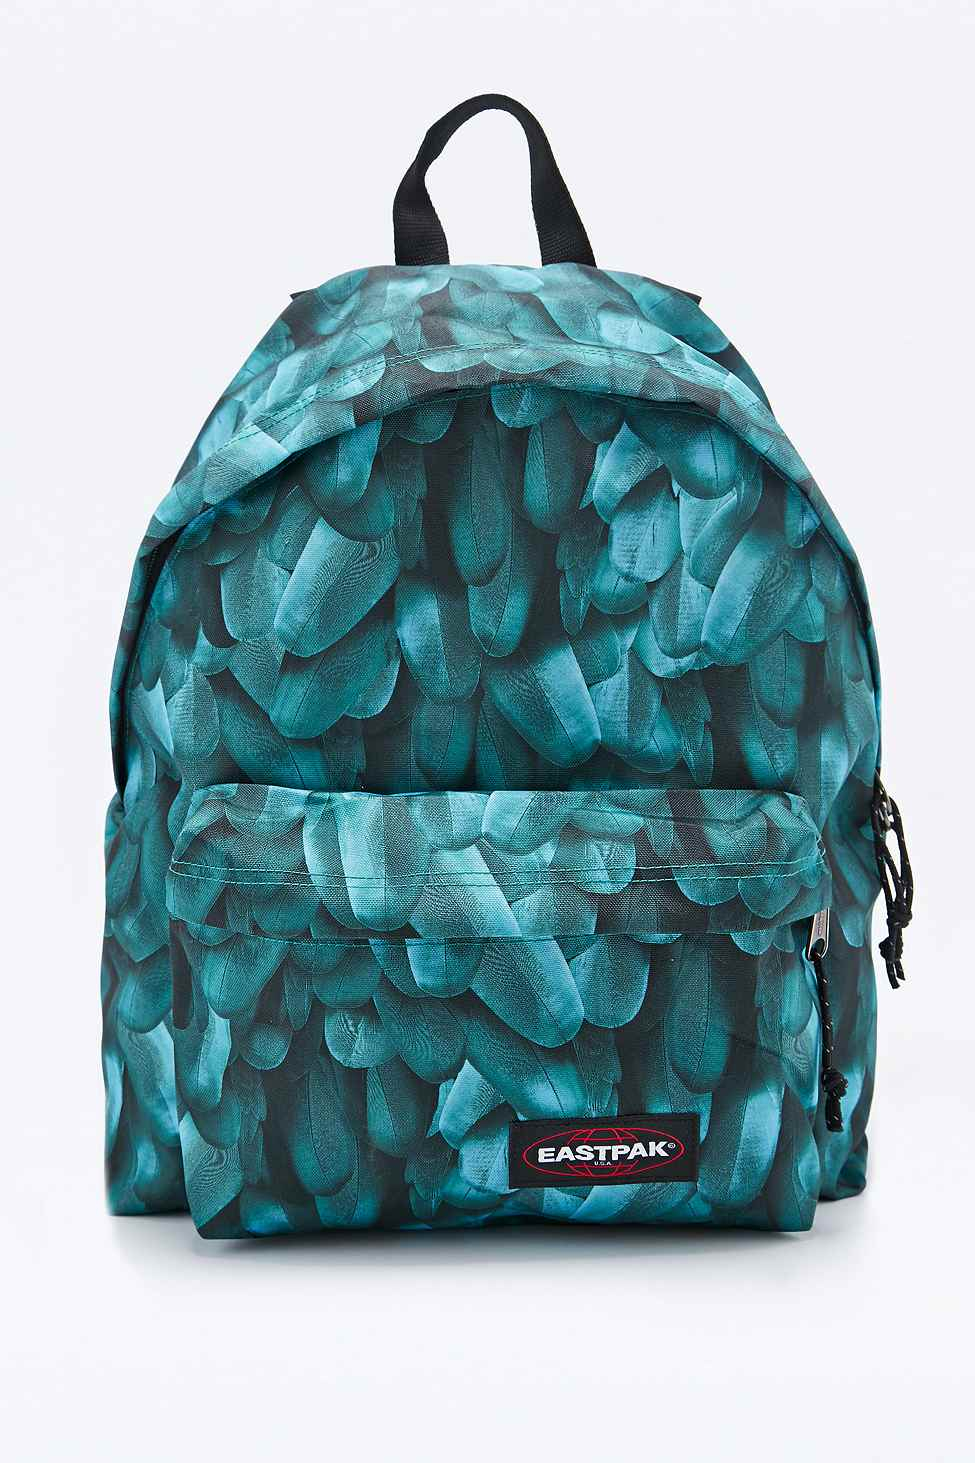 Eastpak Pak R Feather Print Padded Backpack In Teal In